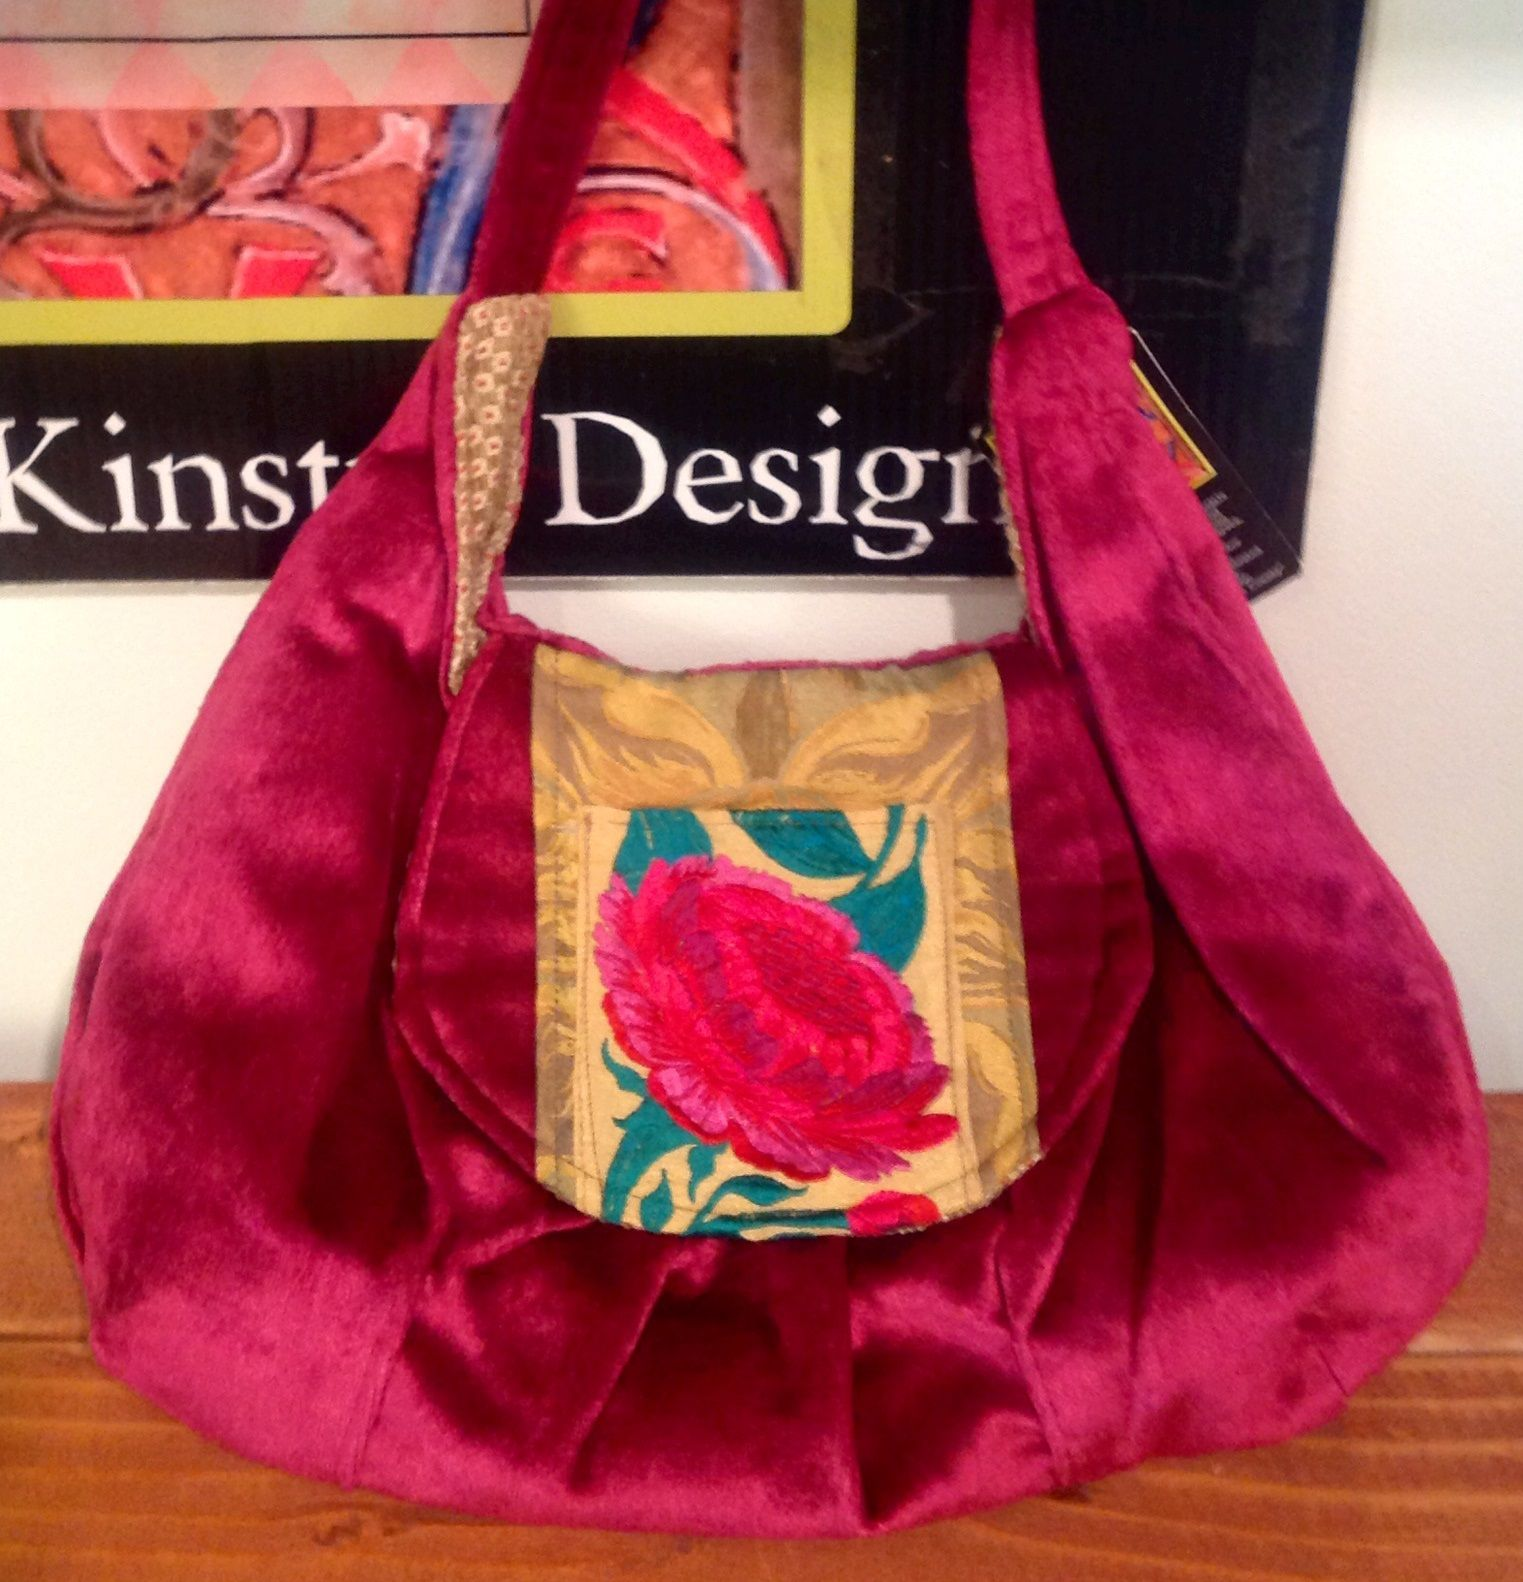 Candy is pretty in pink this purse is sure to get people